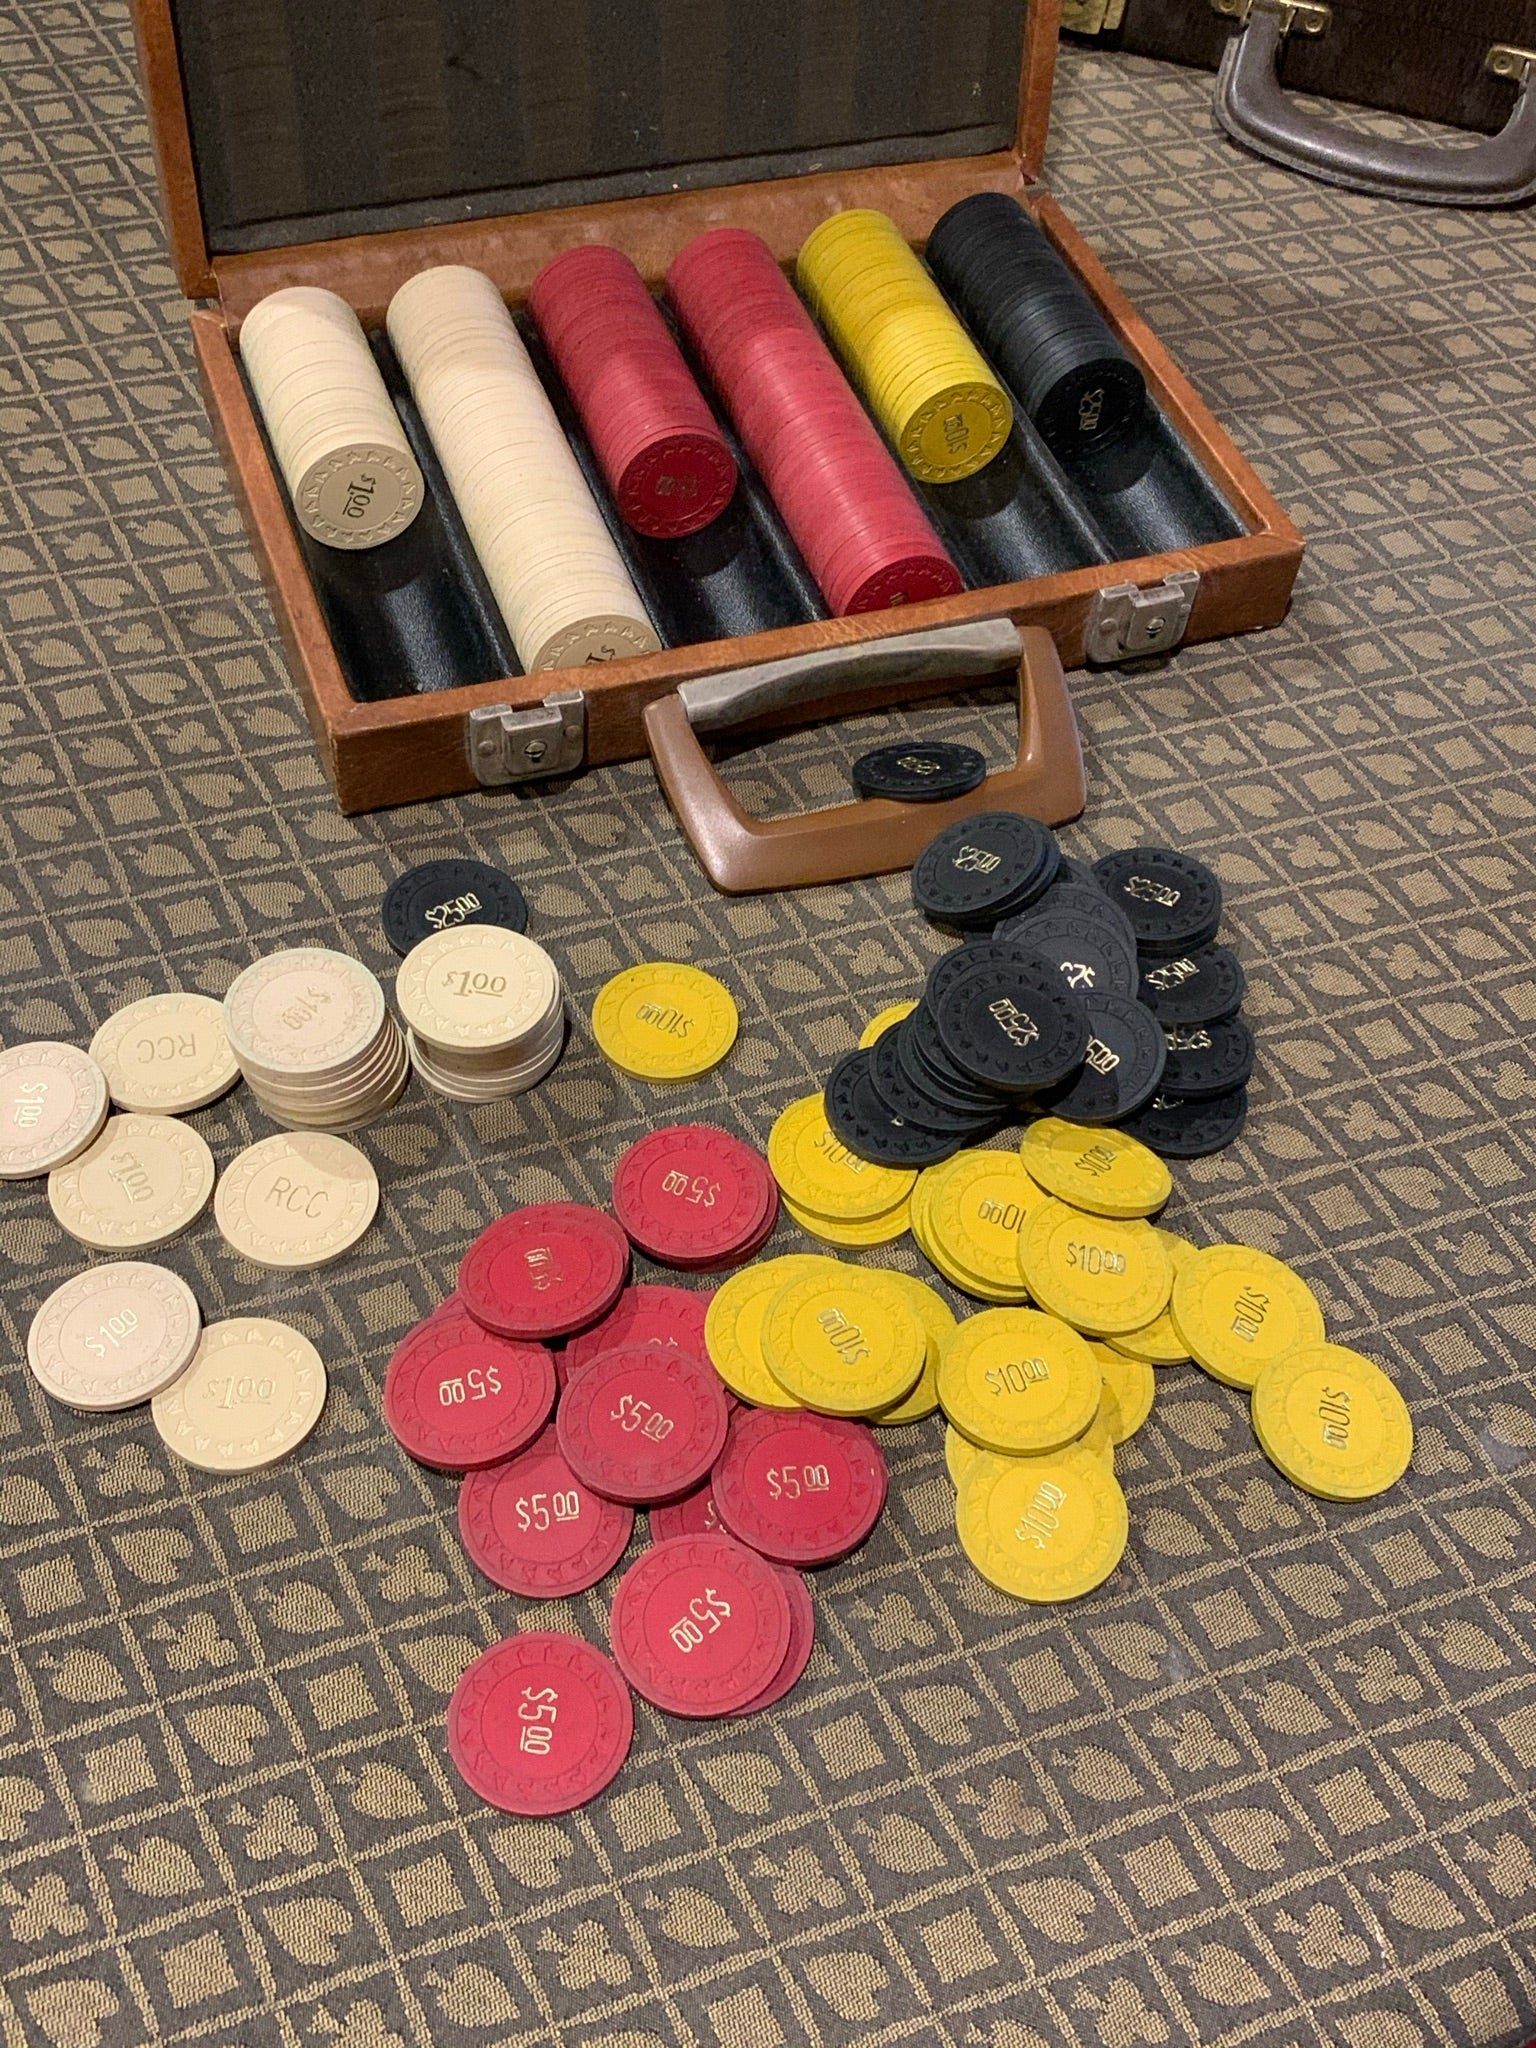 Vintage 1950's Clay Poker Chip Set - 4 Denominations - 294 Chips in Original Case Horsehead Mold